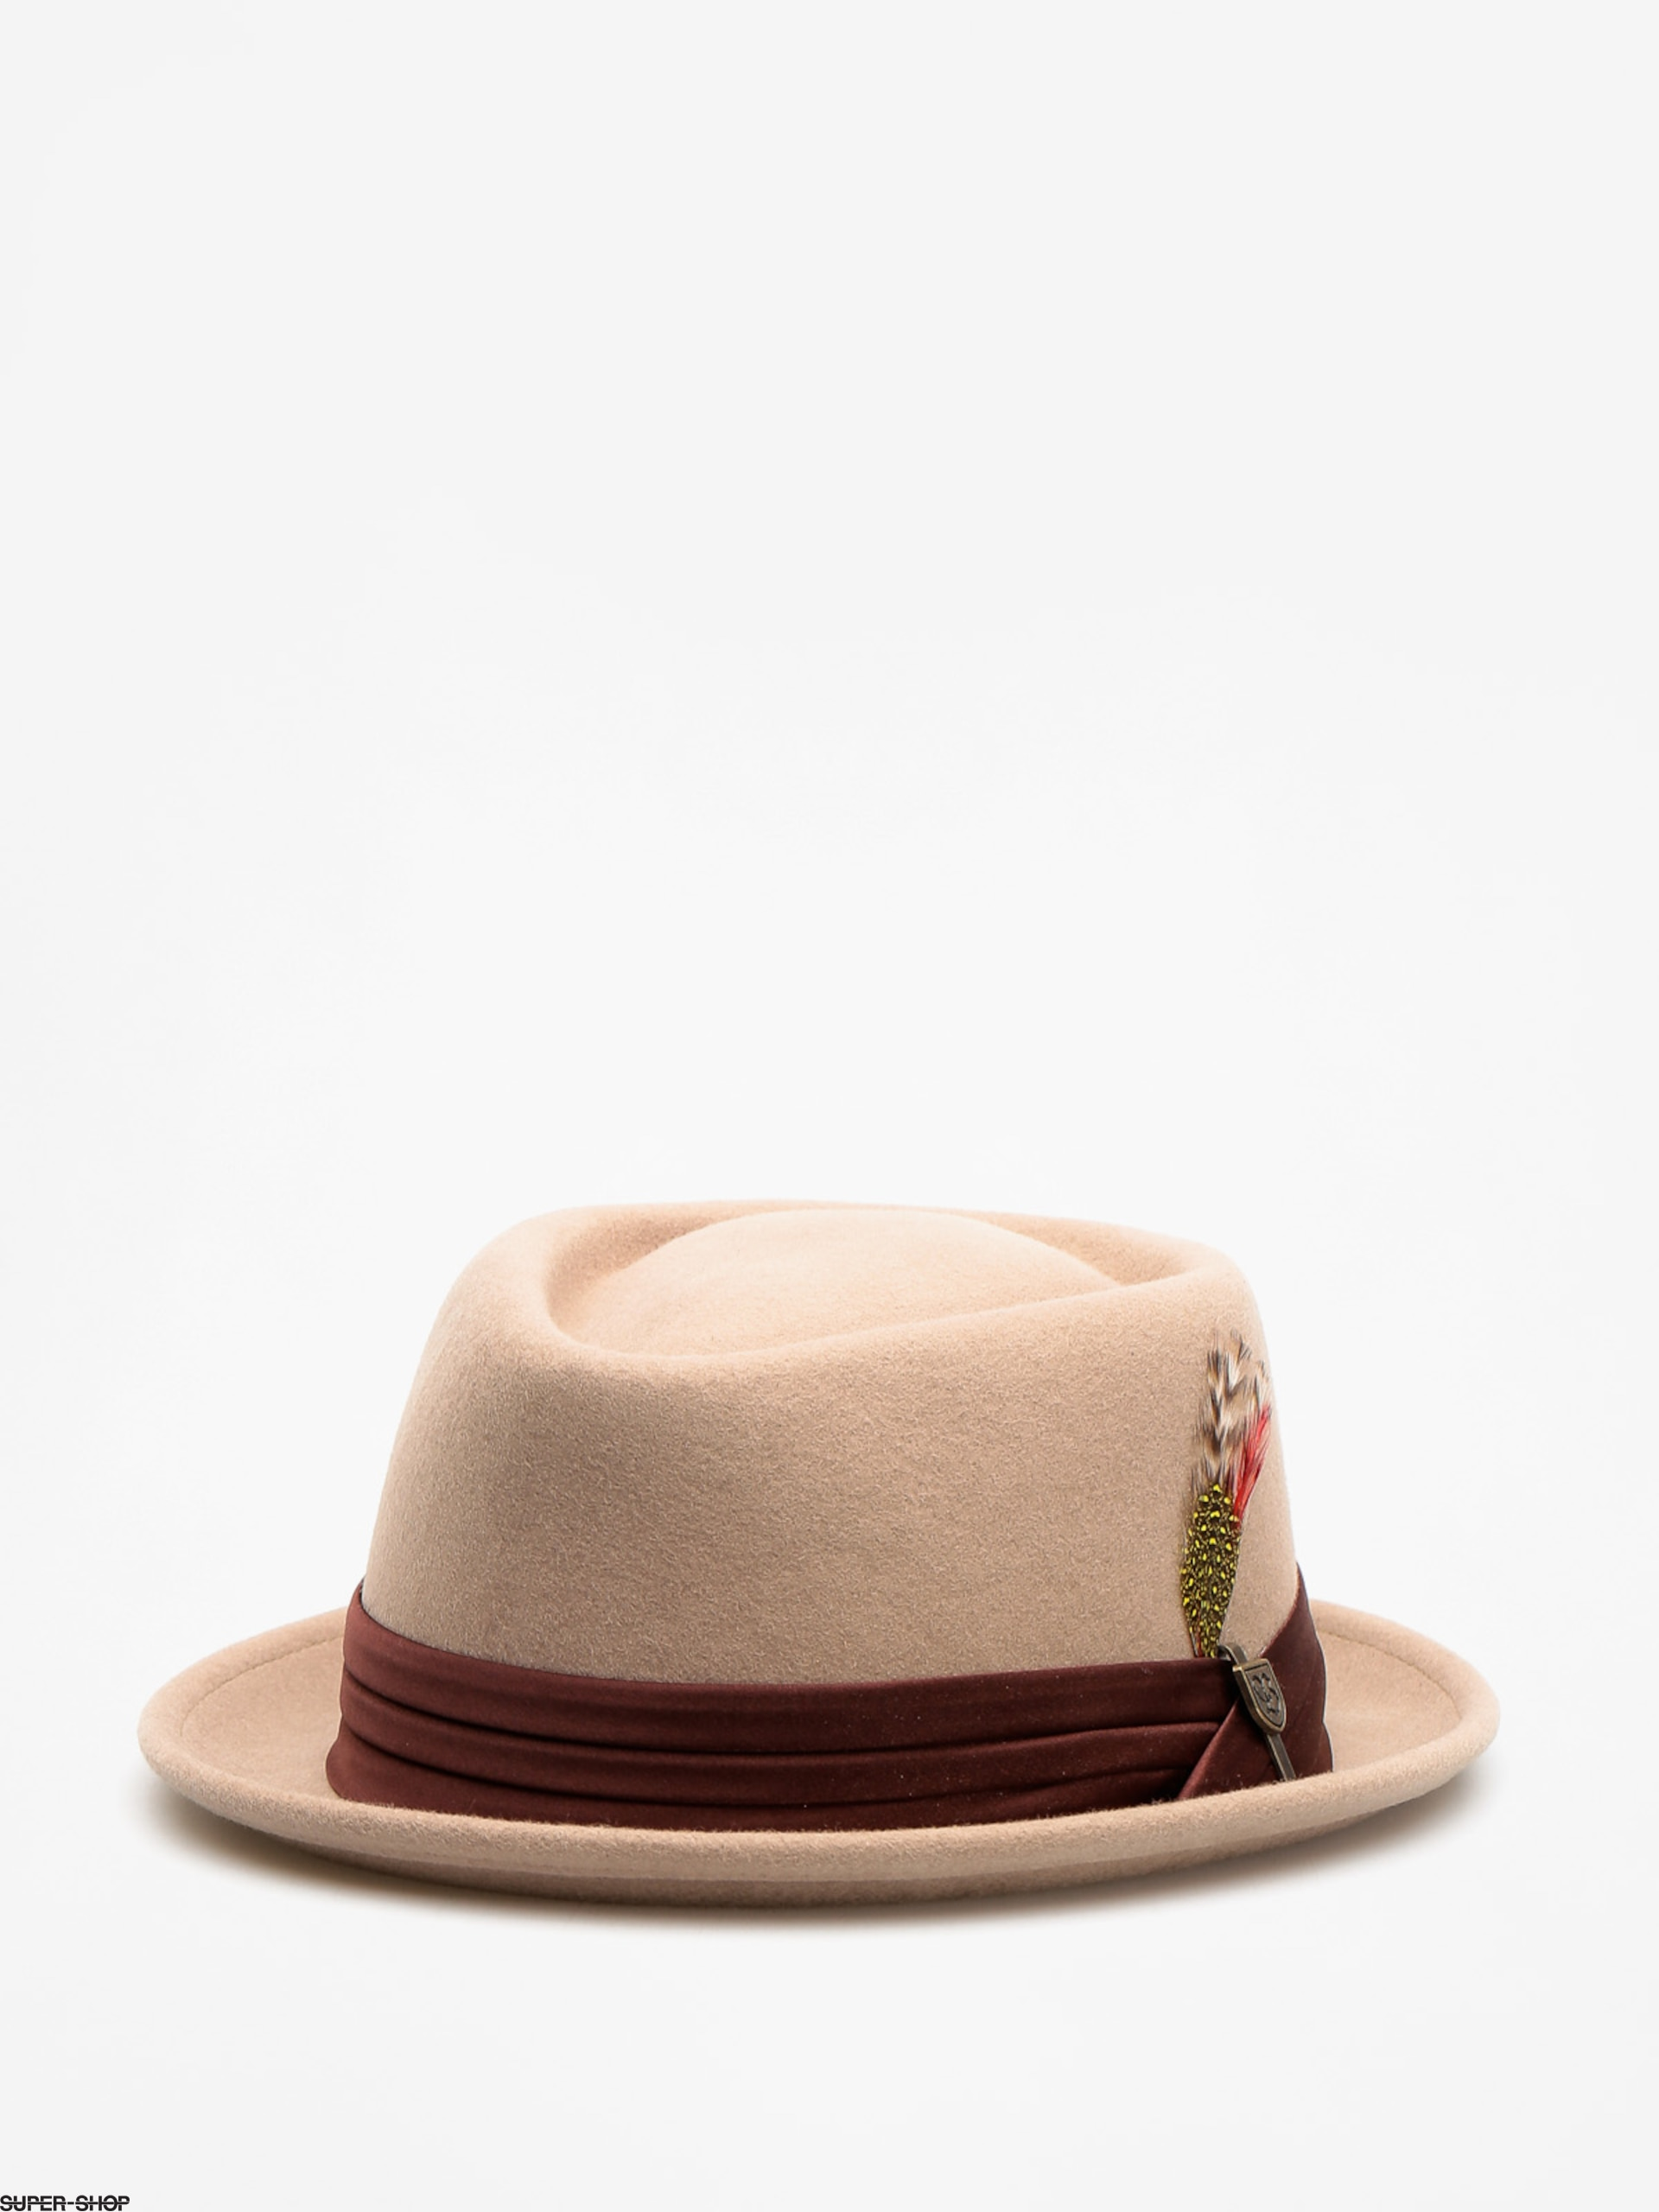 Brixton Hat Stout Pork Pie (light tan/brown)